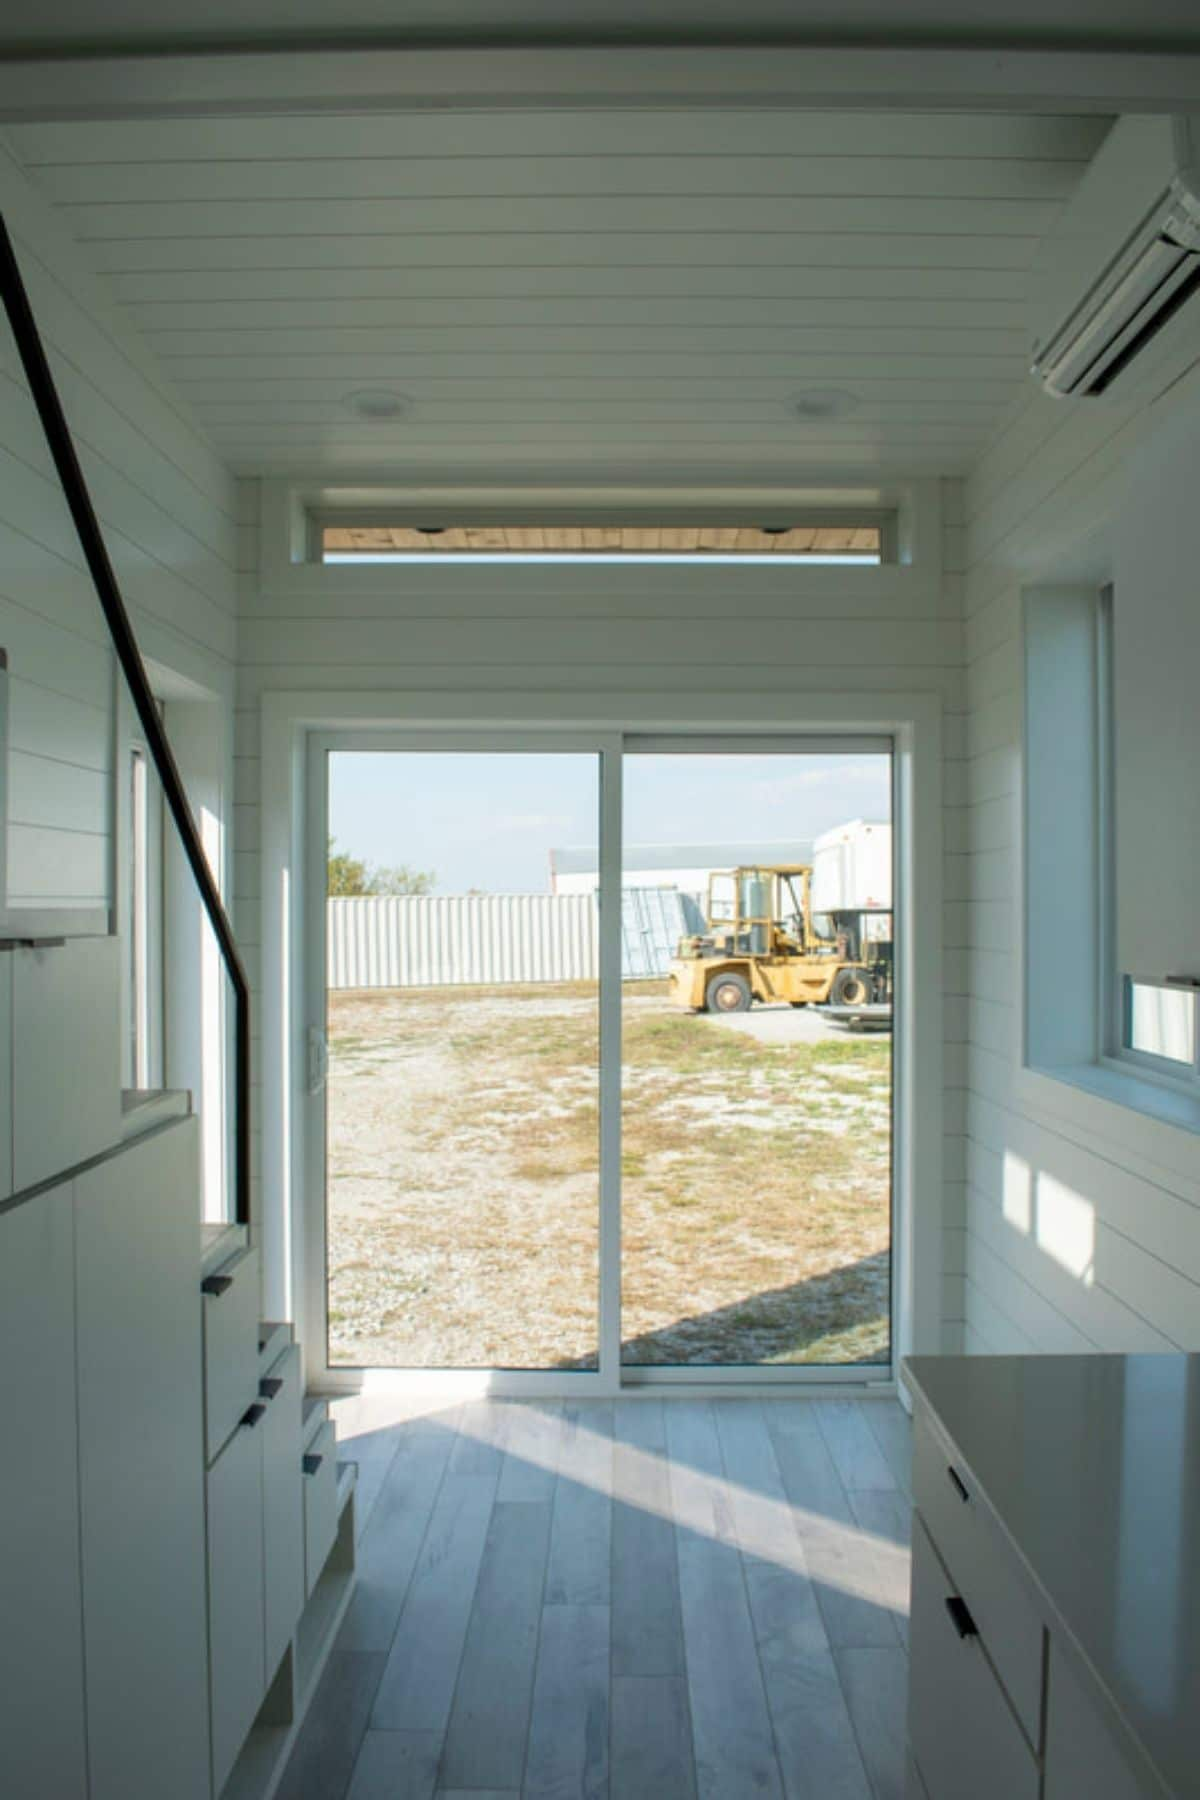 Full wall picture windows at end of white interior of tiny home